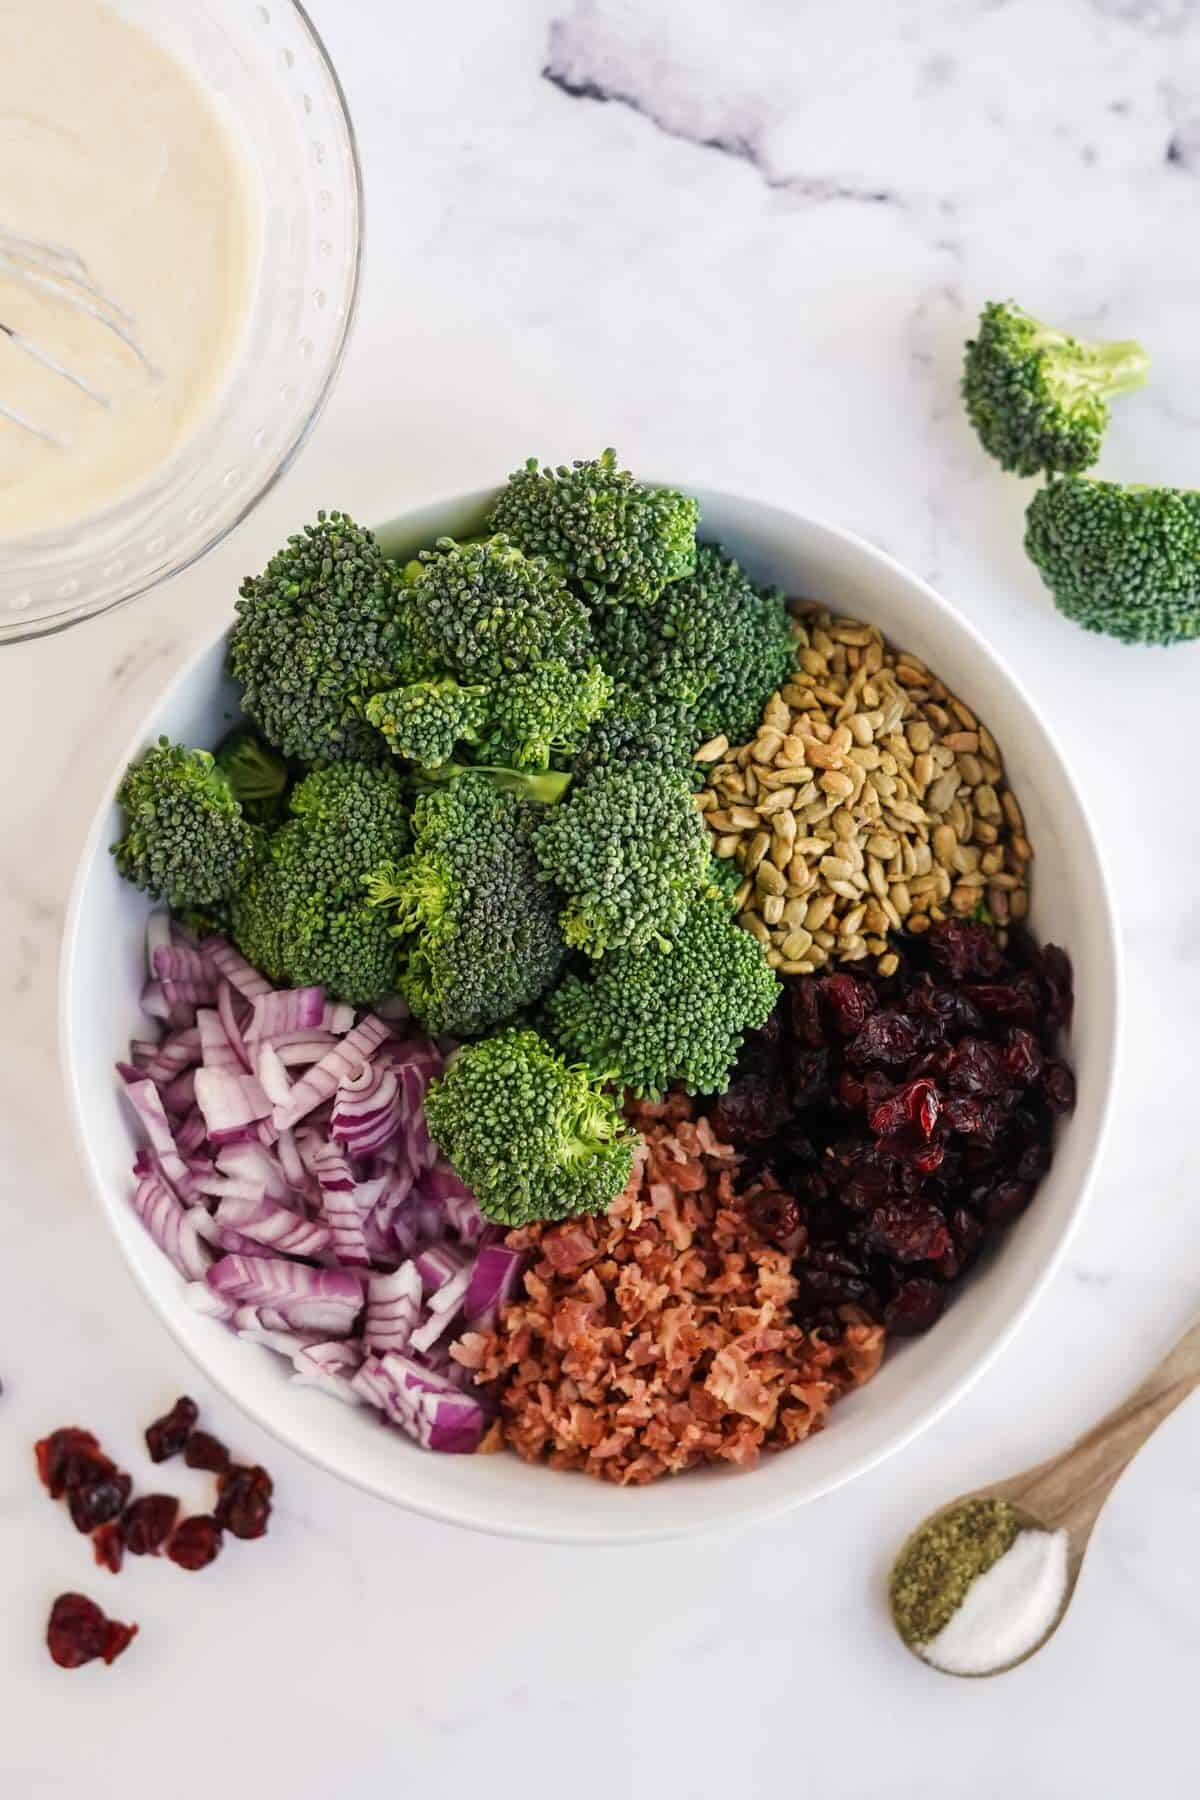 all ingredients for broccoli salad in a bowl before mixing